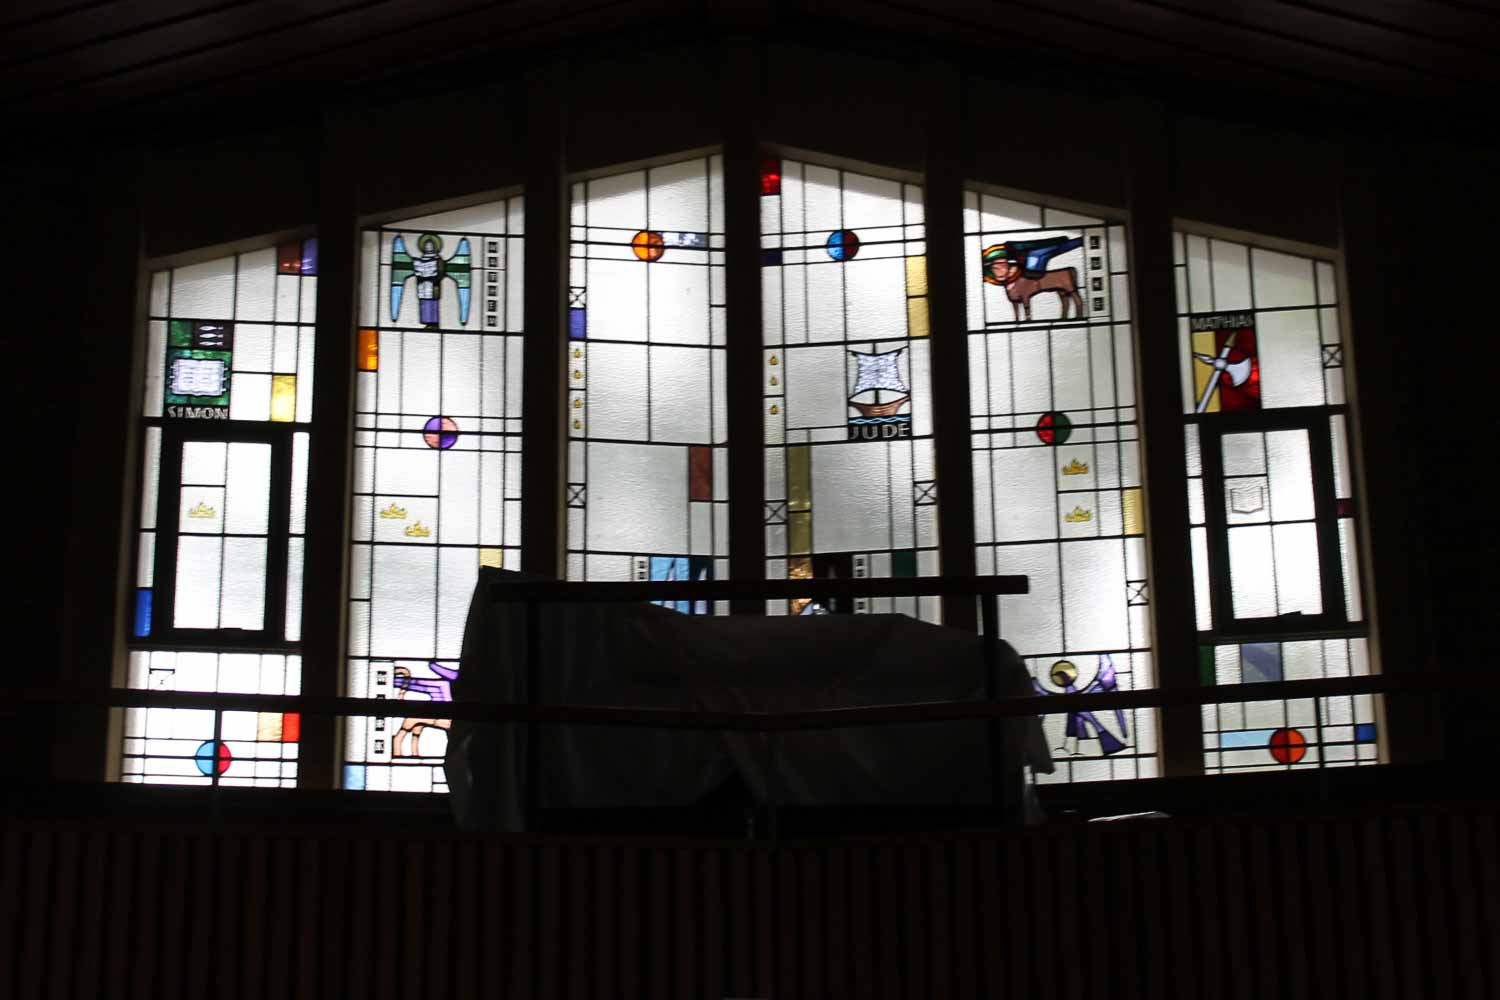 Coburg Uniting Church Melbourne, Our Beliefs 3: stained glass windows with a darkened backdrop